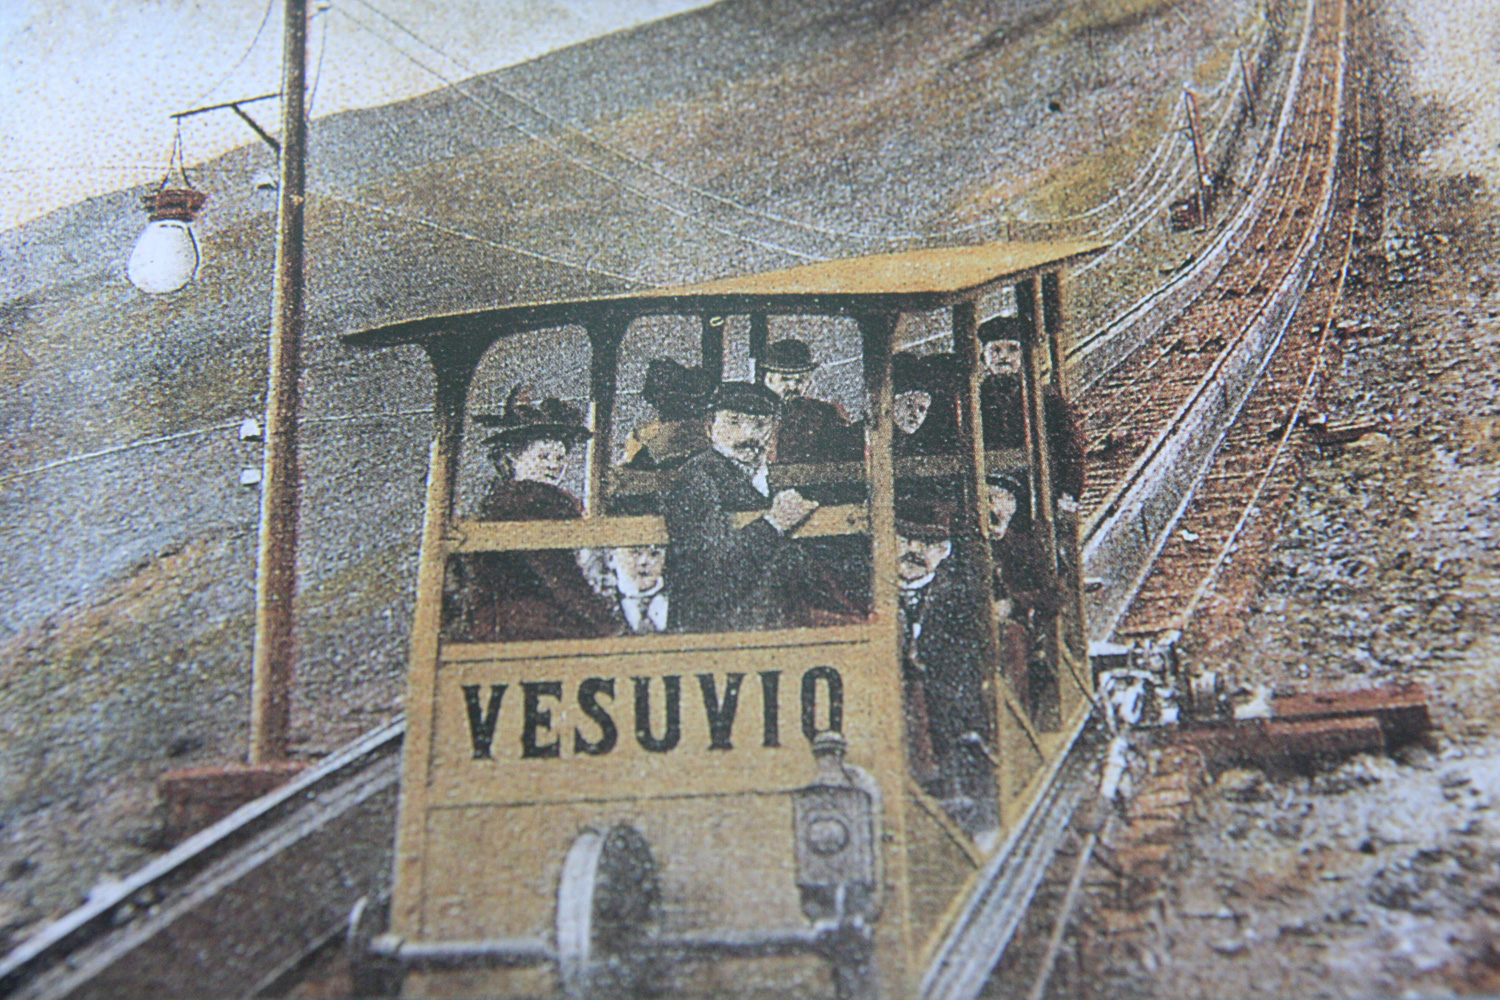 Publicity for the 1880 tram up Mt. Vesuvius